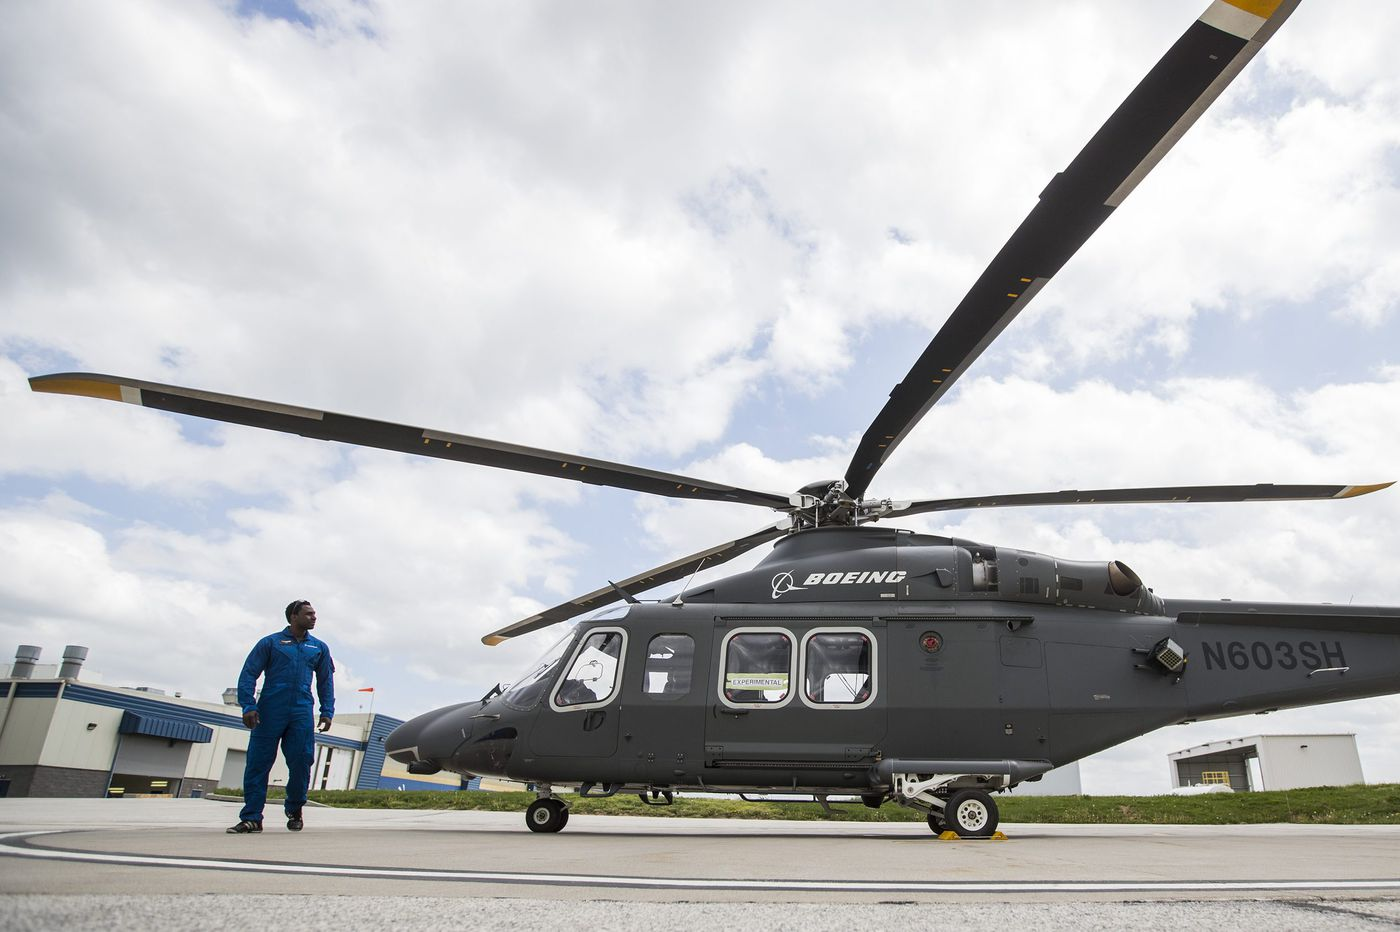 Helicopter maker Leonardo adds 166 jobs, $65 million training center in Northeast Philadelphia